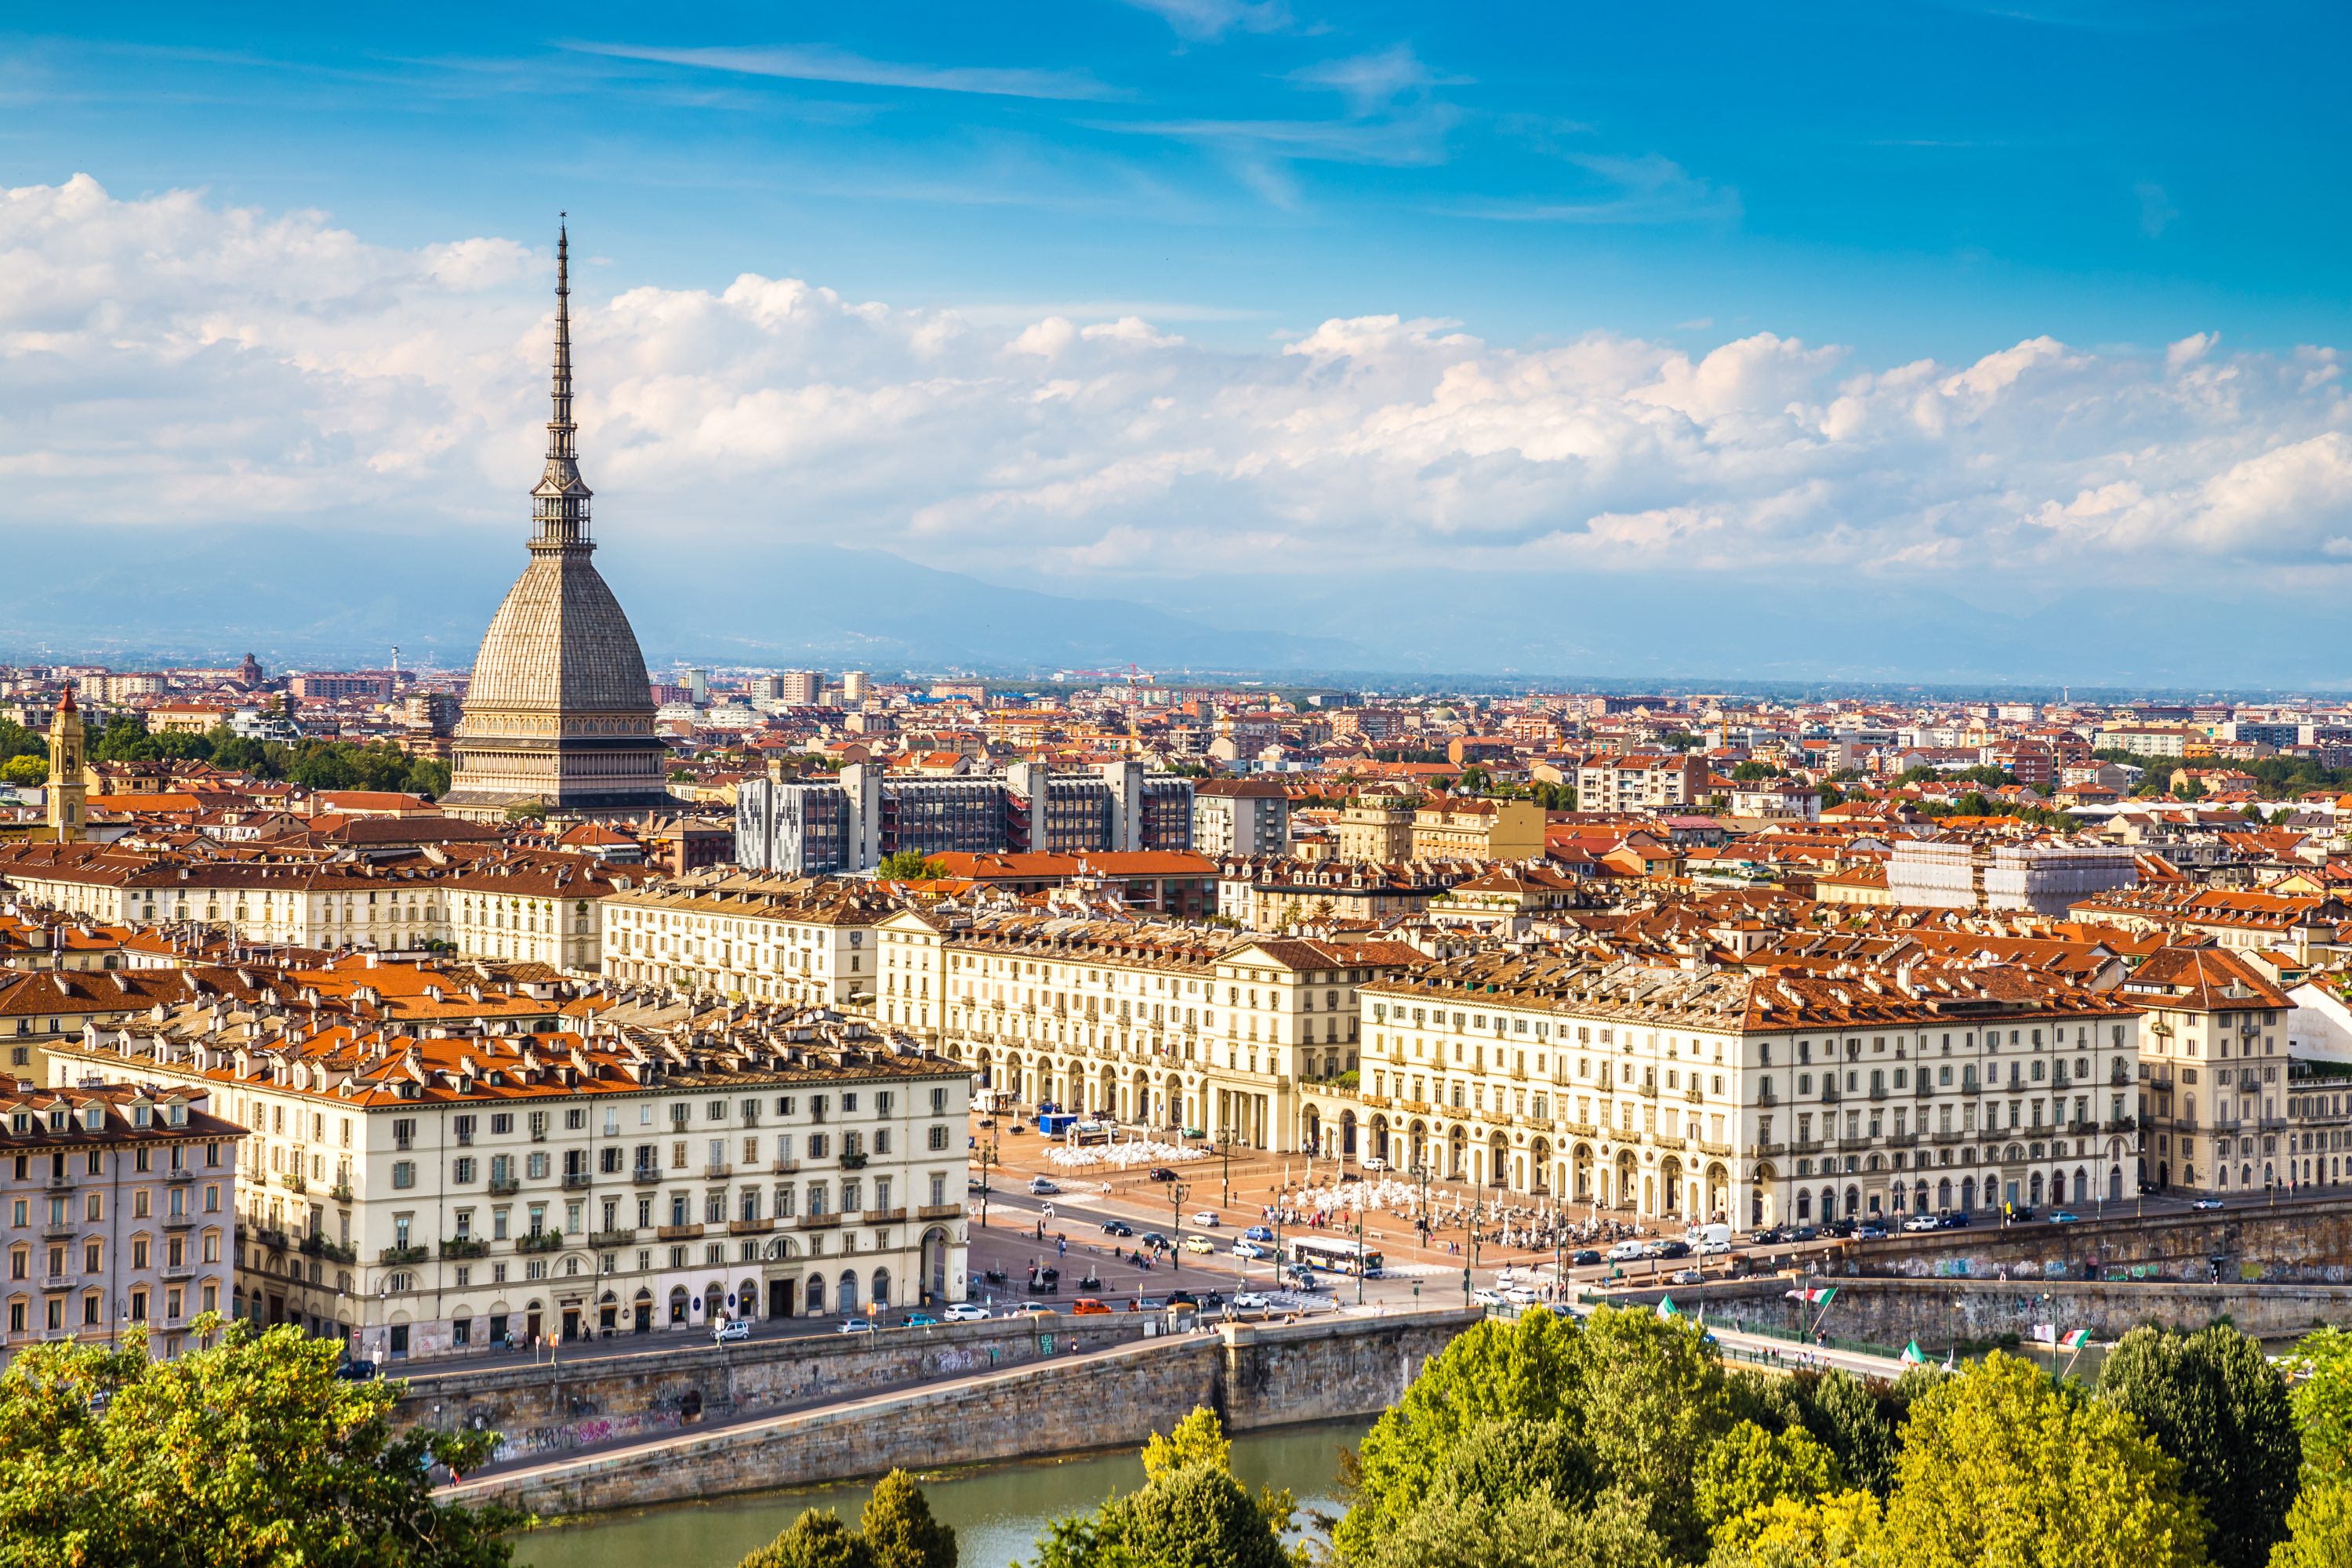 Turin City with Landmark of Mole Antonelliana